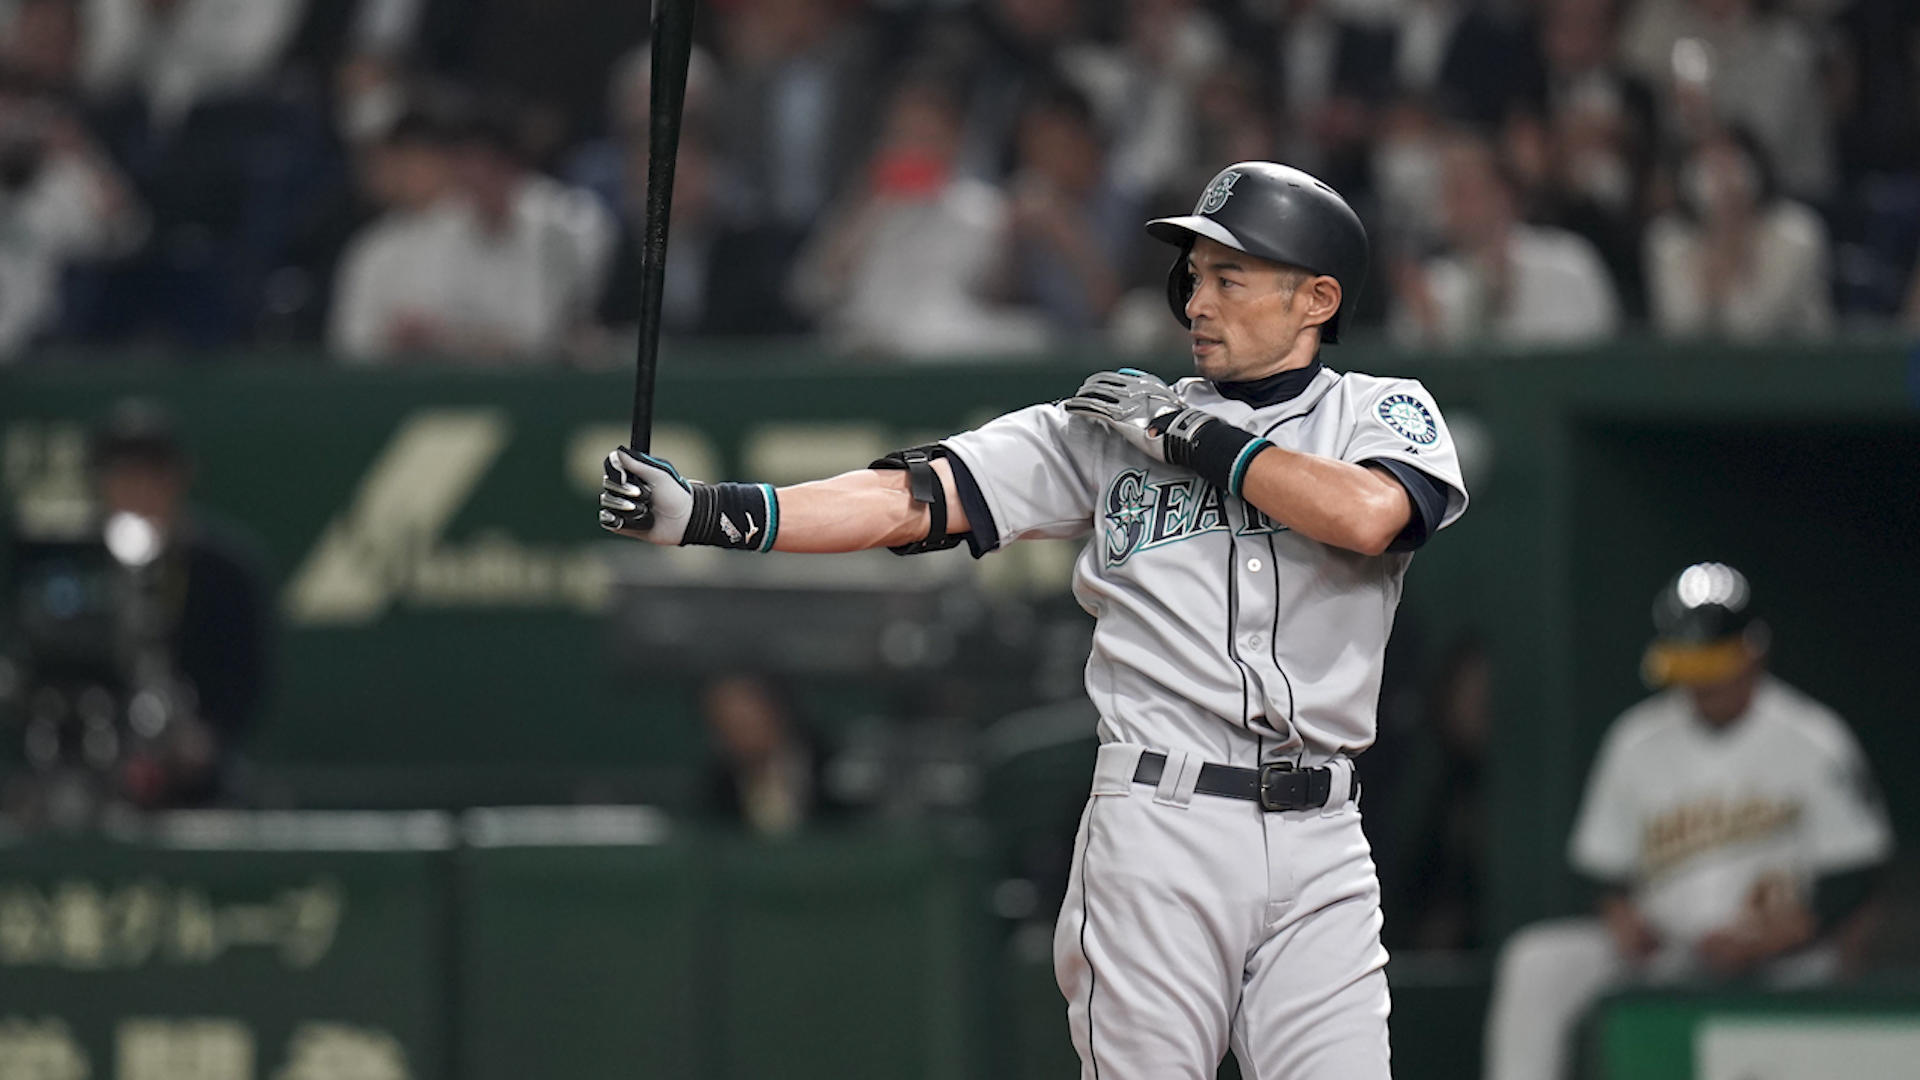 Ichiro gets enormous ovation during Mariners' win in Japan Opening Series at Tokyo Dome